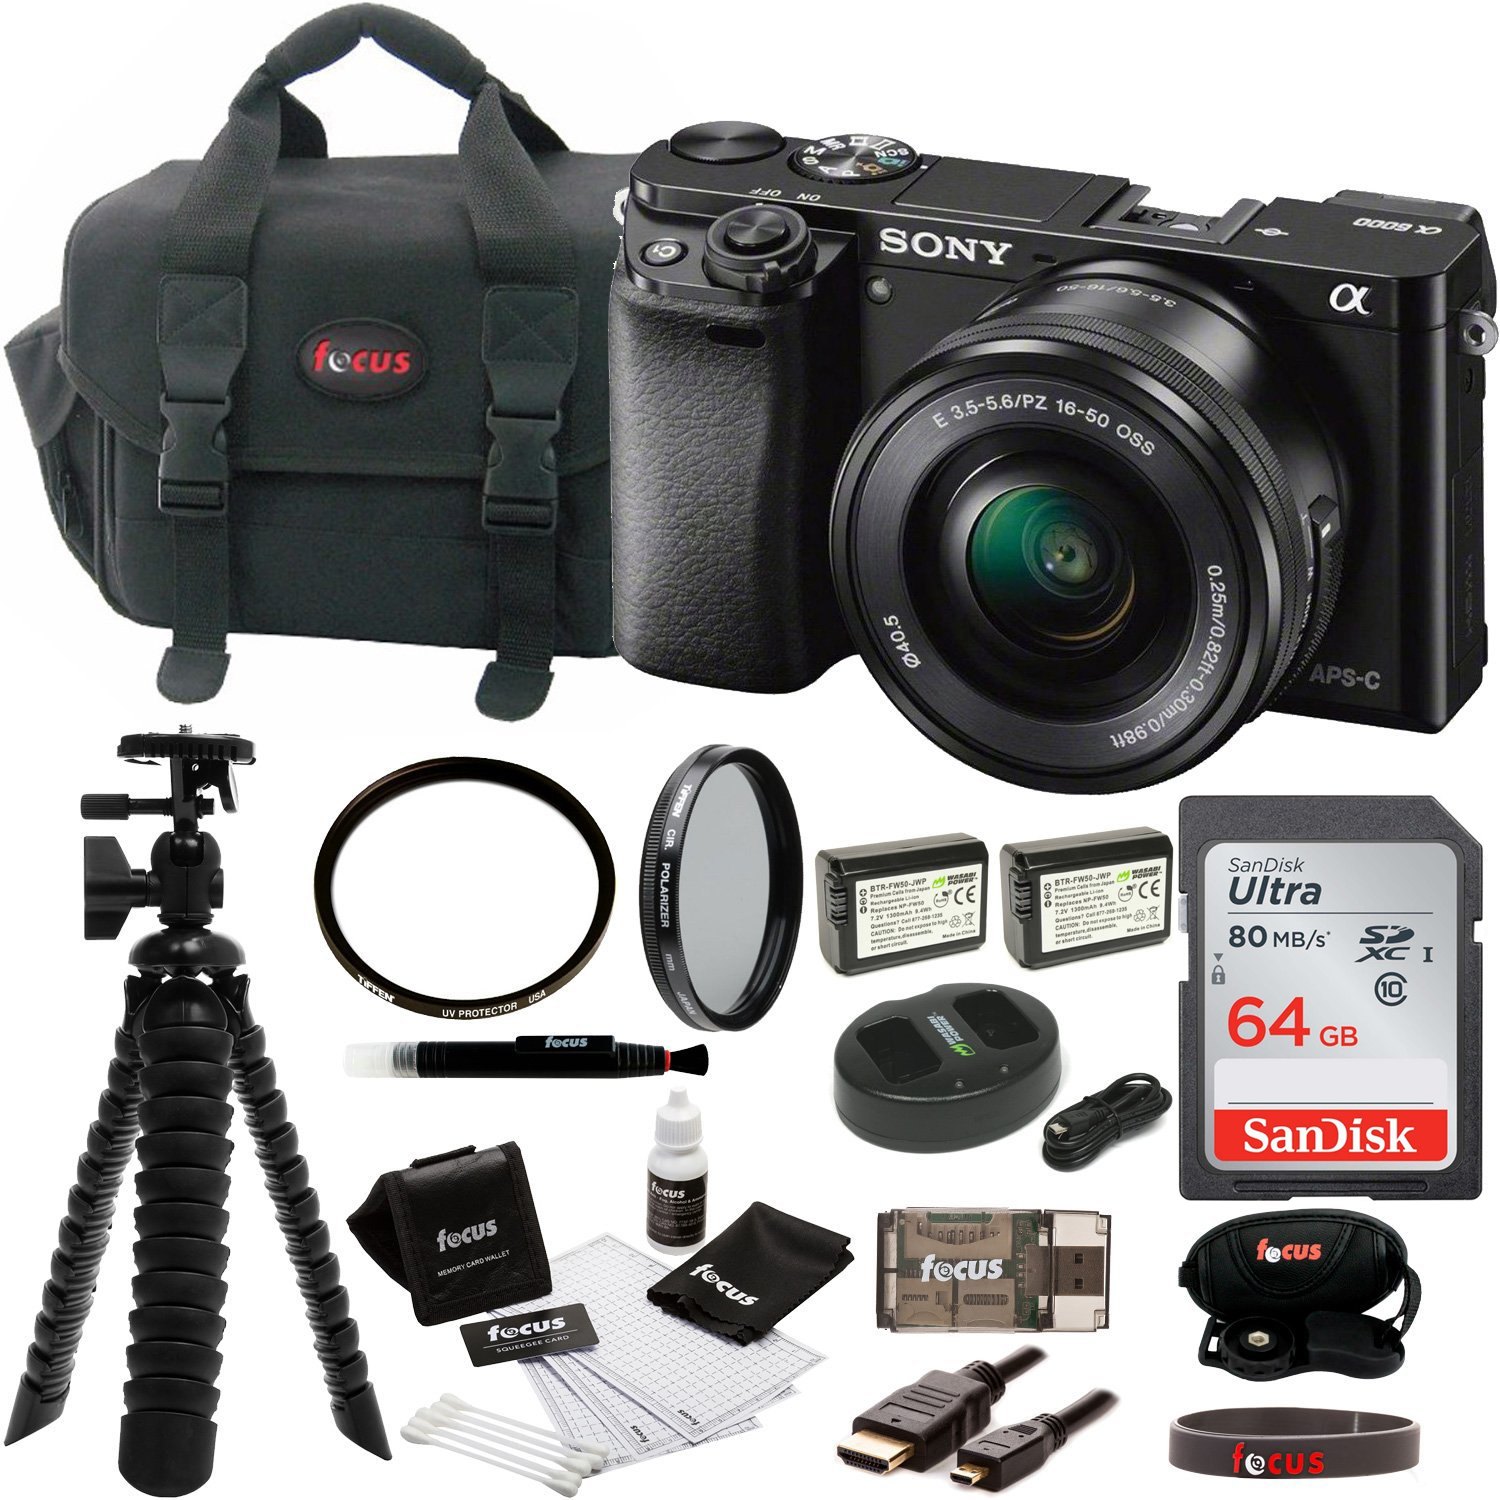 Sony Alpha a6000 Mirrorless Camera w/ 16-50mm Lens & 64GB SD Card Bundle (Black)